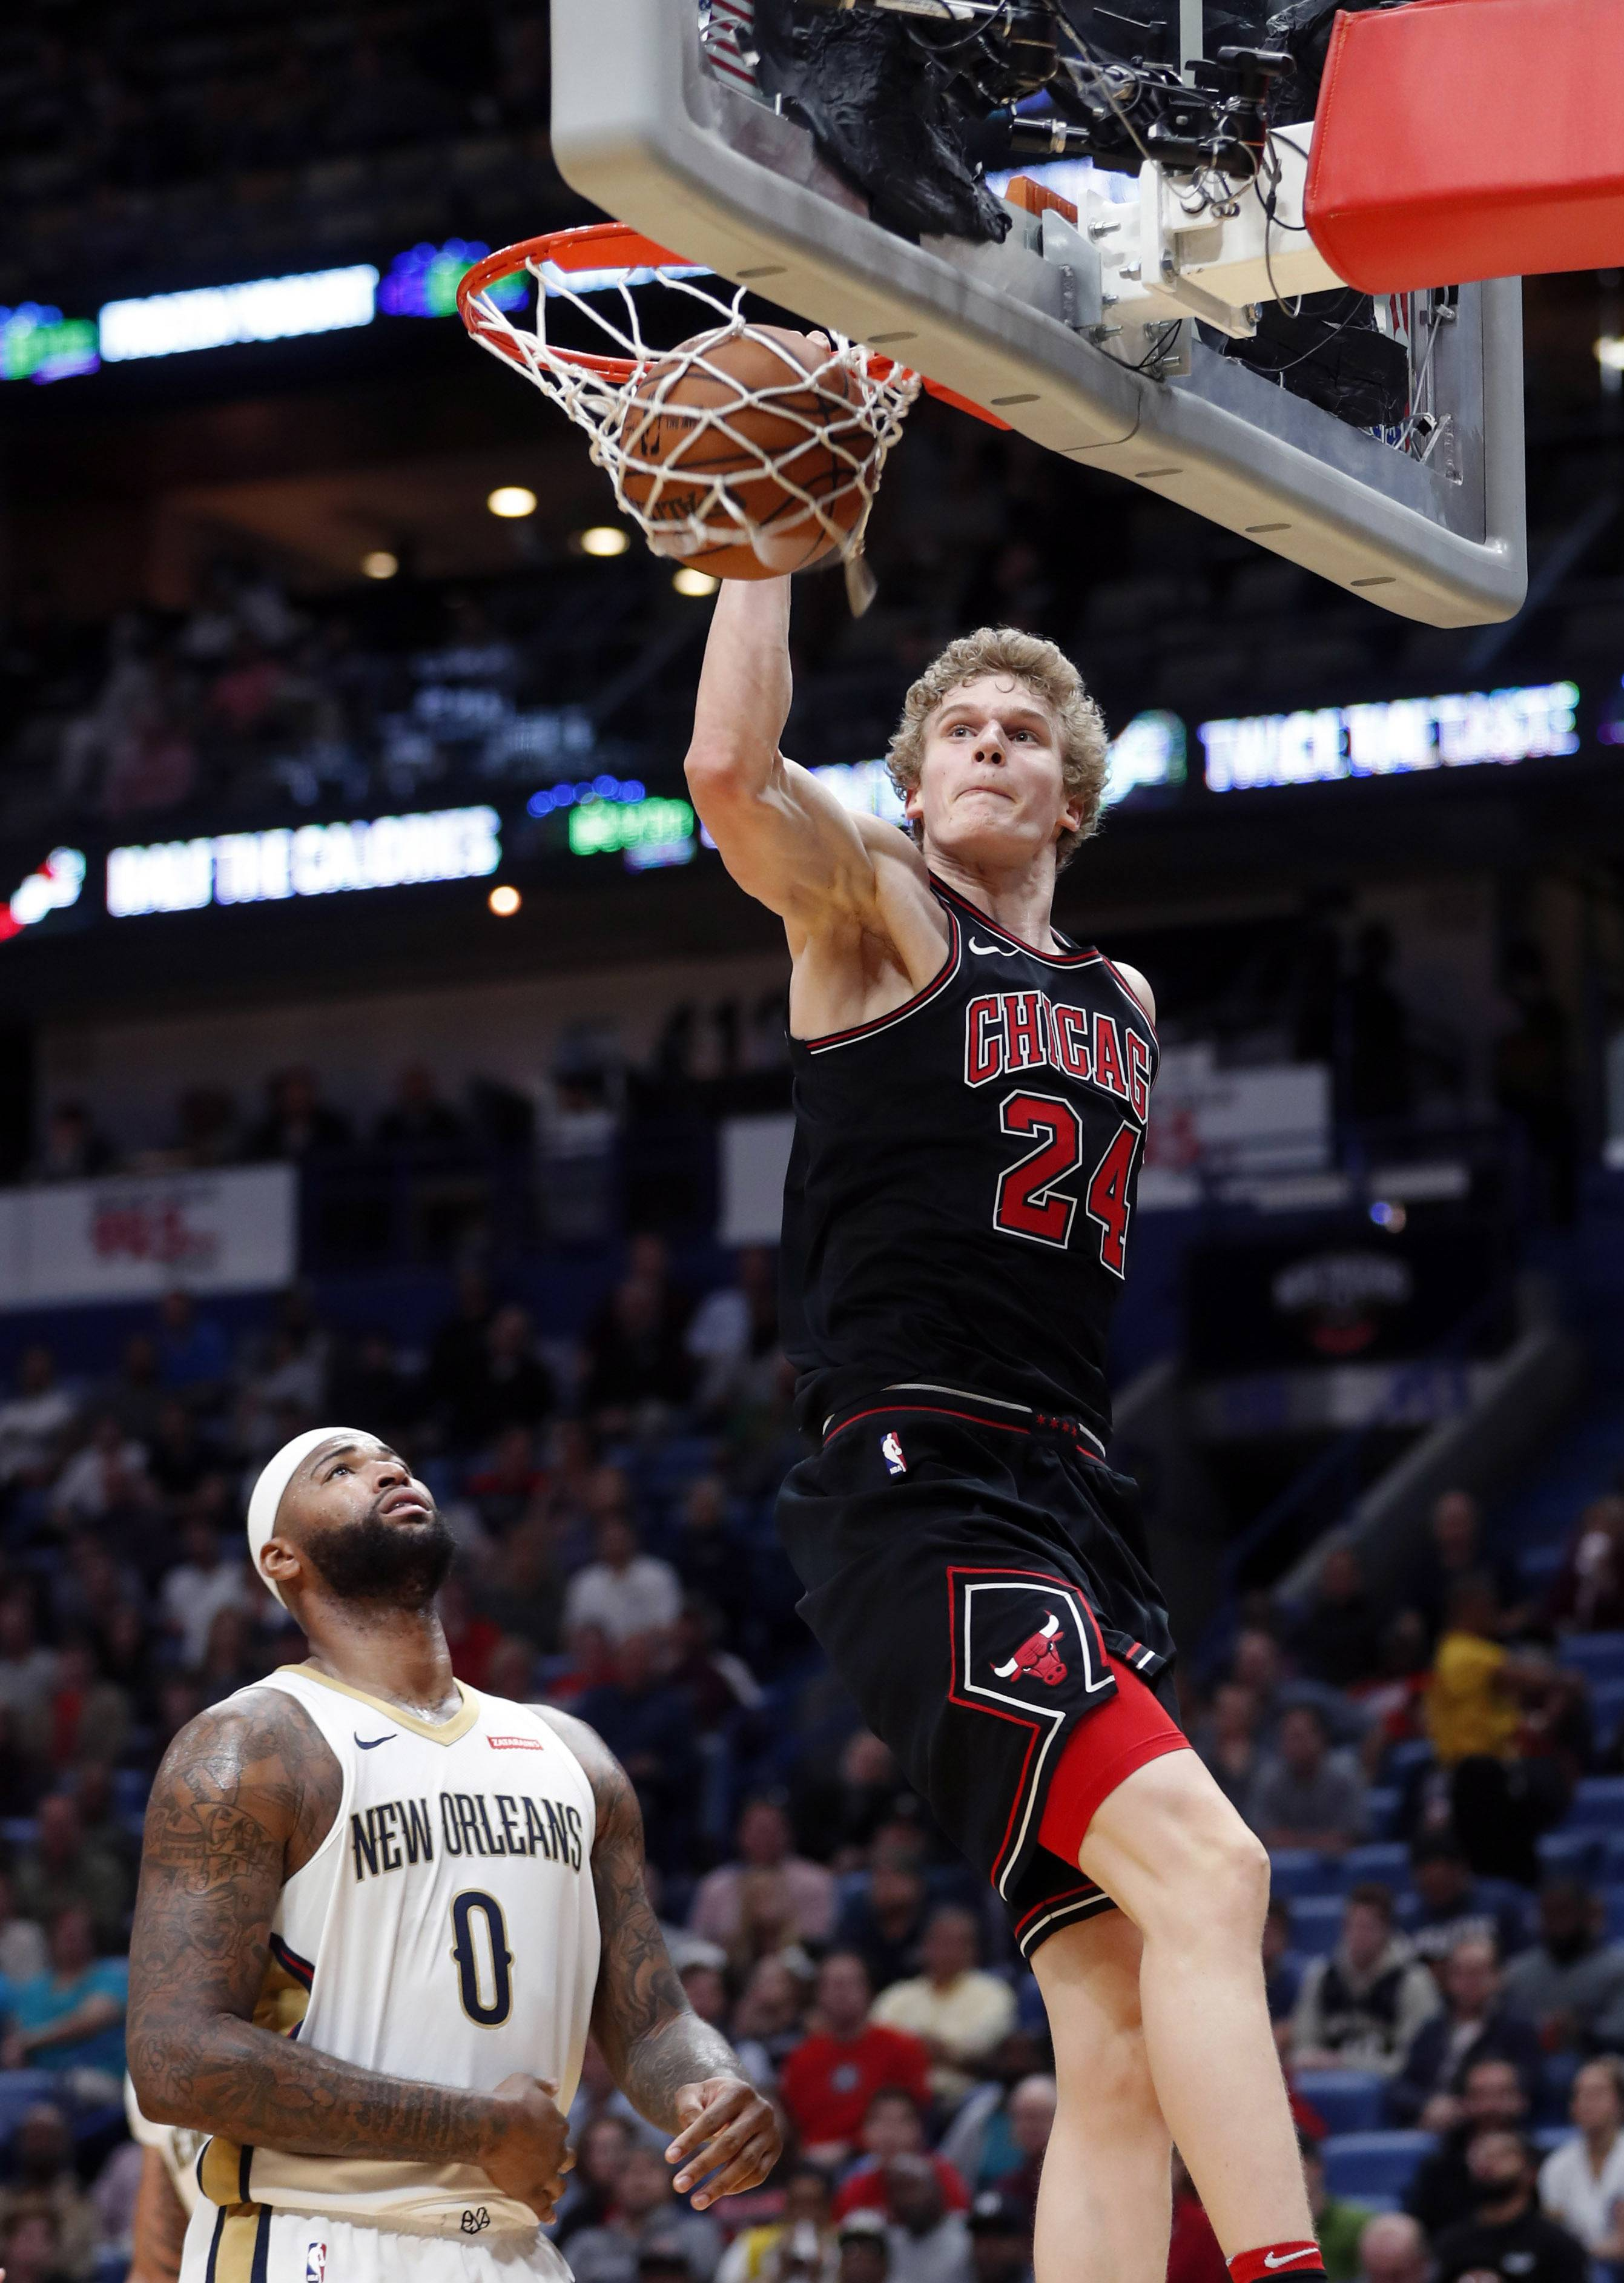 Diapers to dunks: Markkanen back with Chicago Bulls after birth of child